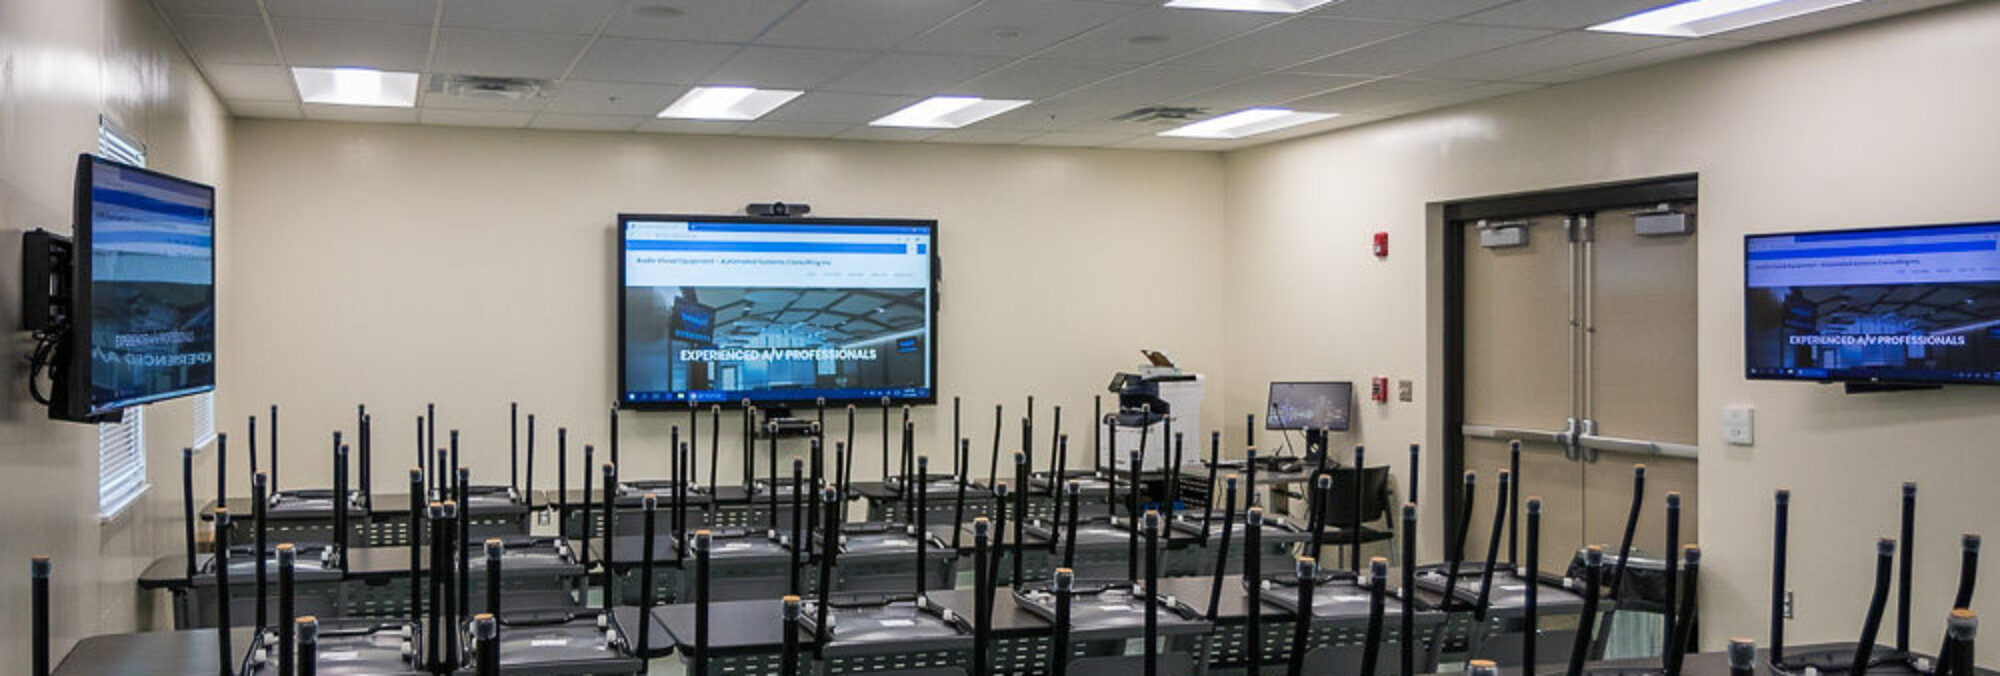 Audio Visual Equipment - Automated Systems Consulting Inc.